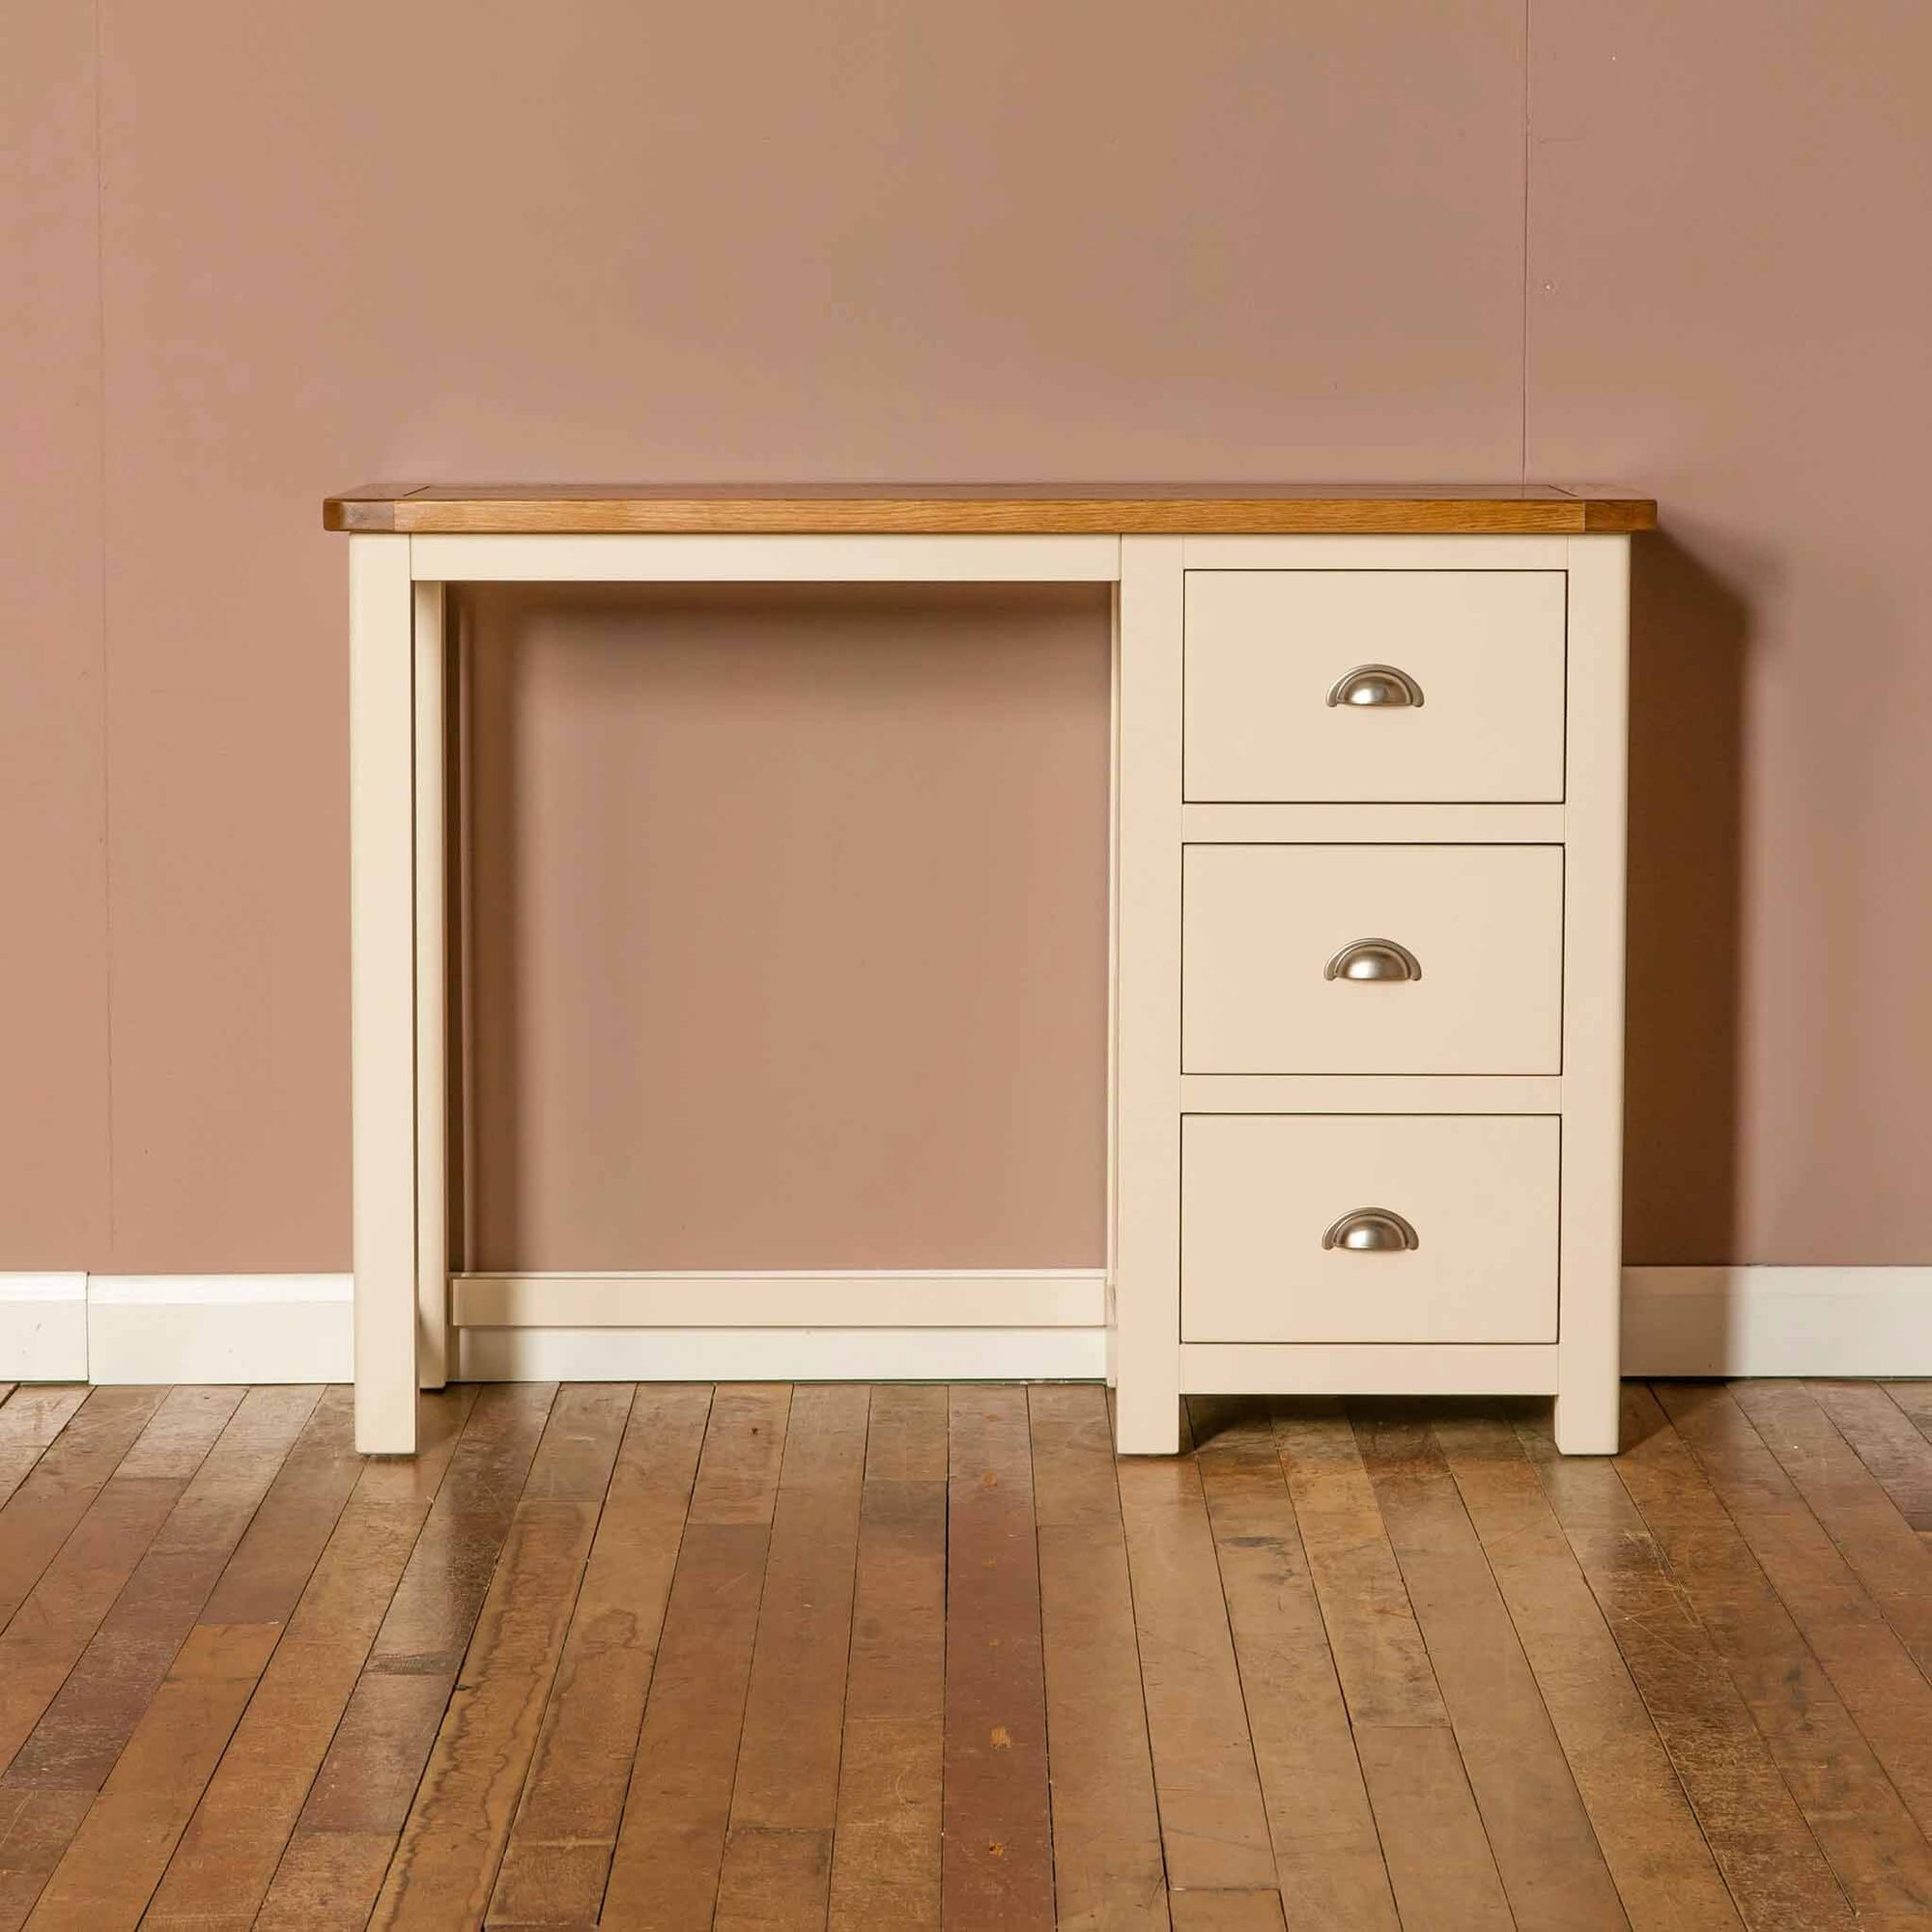 The Padstow Cream Small Wooden Dressing Table with 3 Drawers from Roseland Furniture